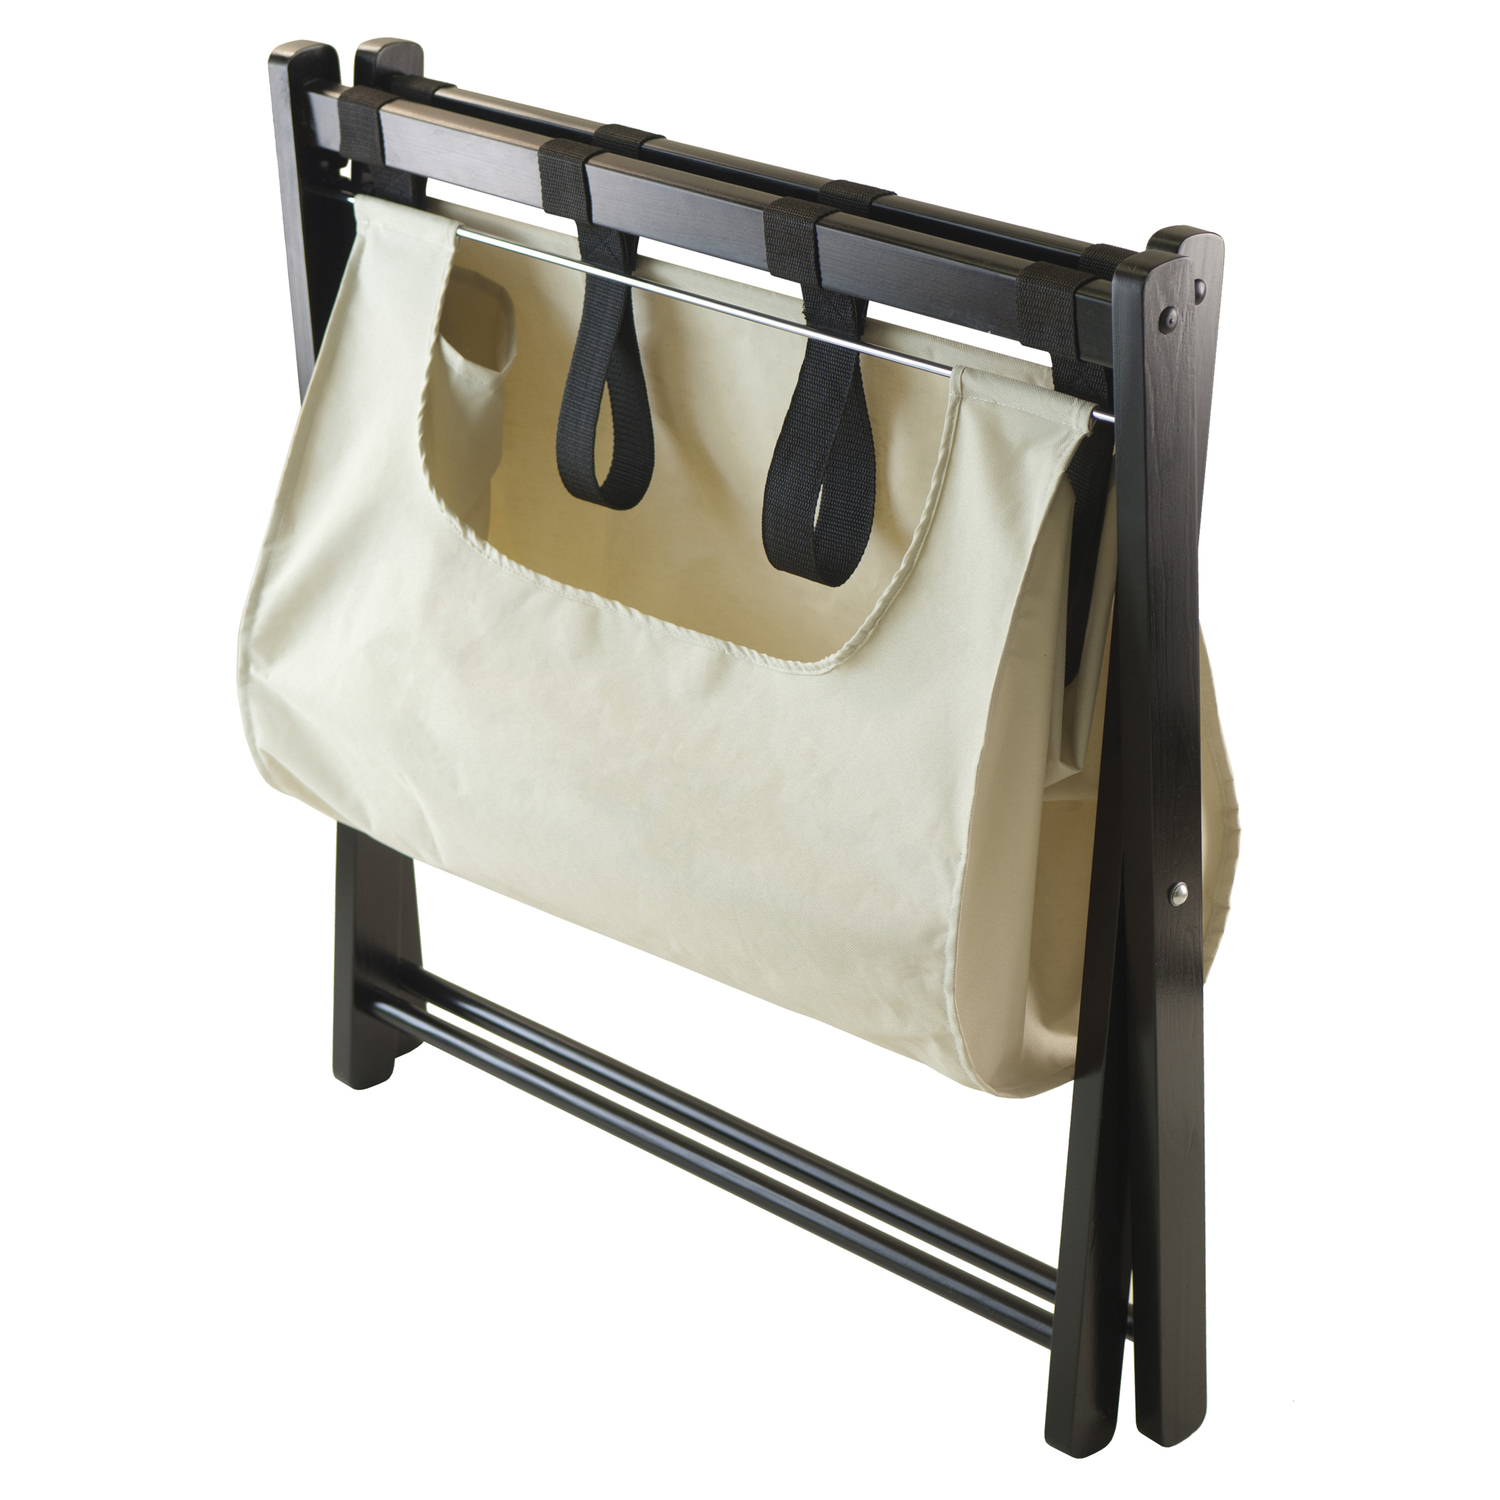 Winsome Dora Luggage Rack by OJ Commerce 92535 - $207.04